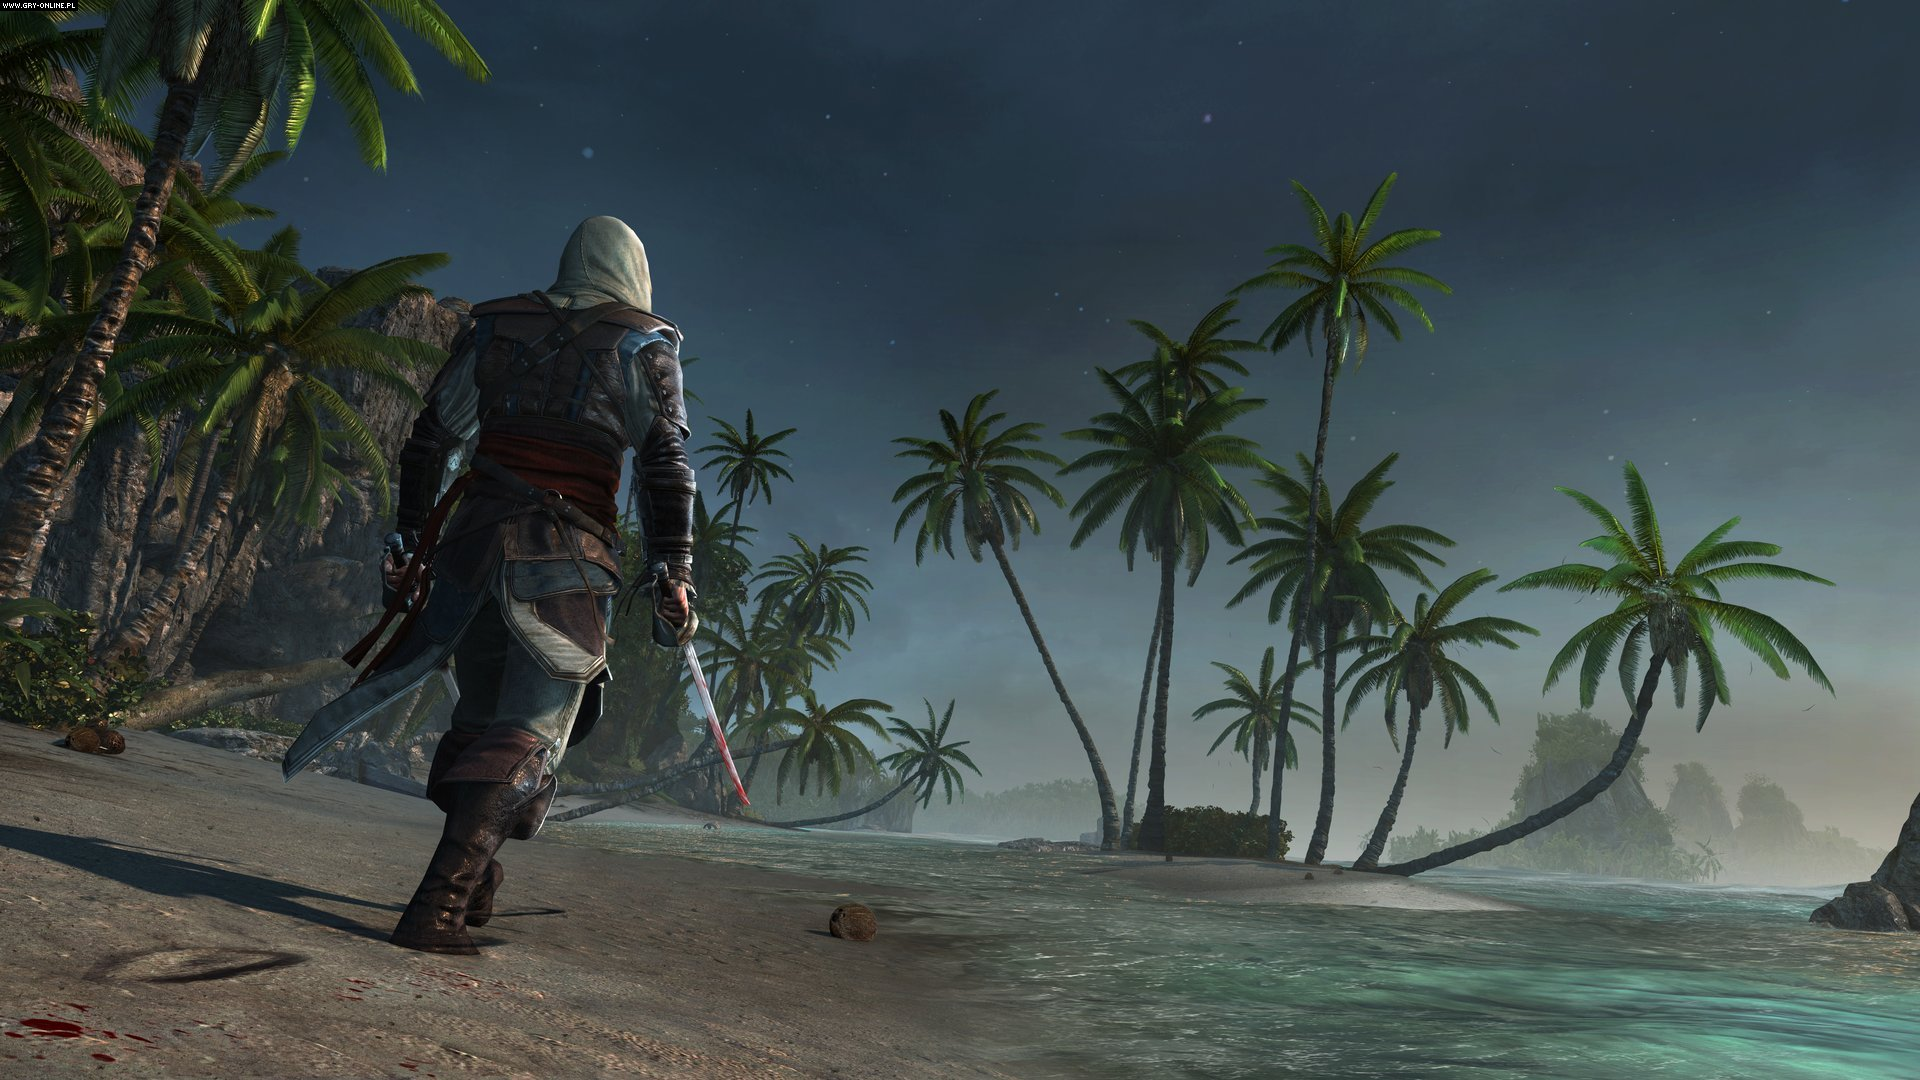 Assassin's Creed IV: Black Flag PC, PS4, XONE Gry Screen 37/107, Ubisoft